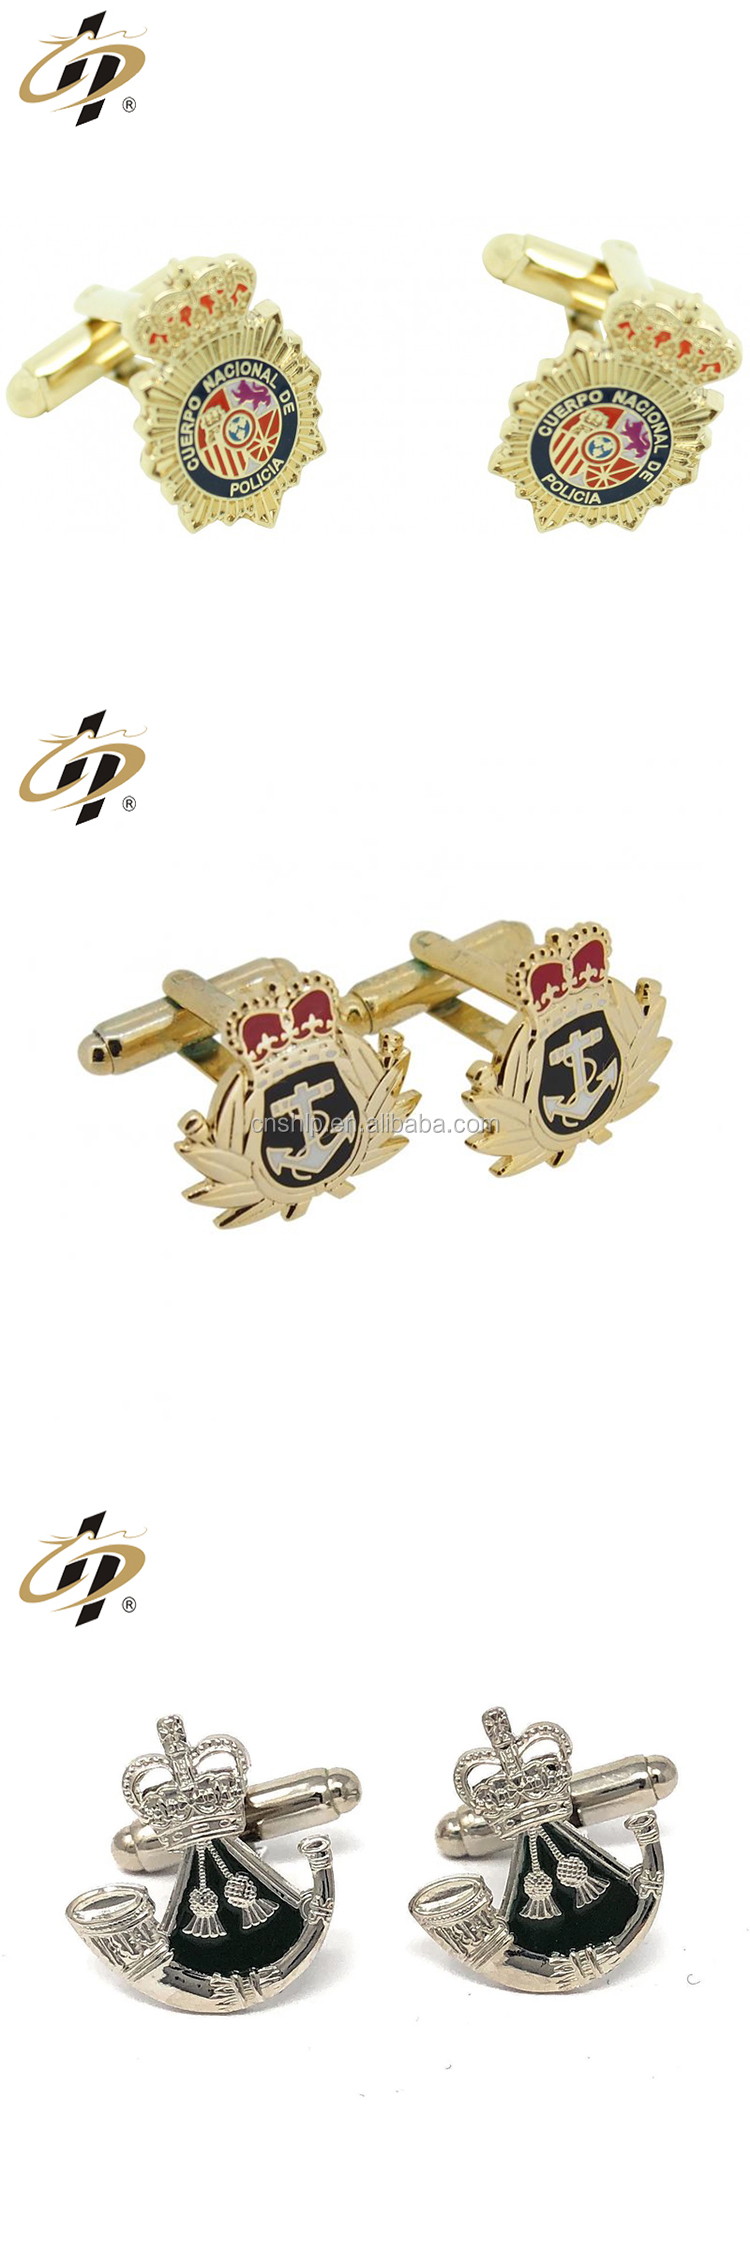 Promotional factory making custom logo crown cufflinks